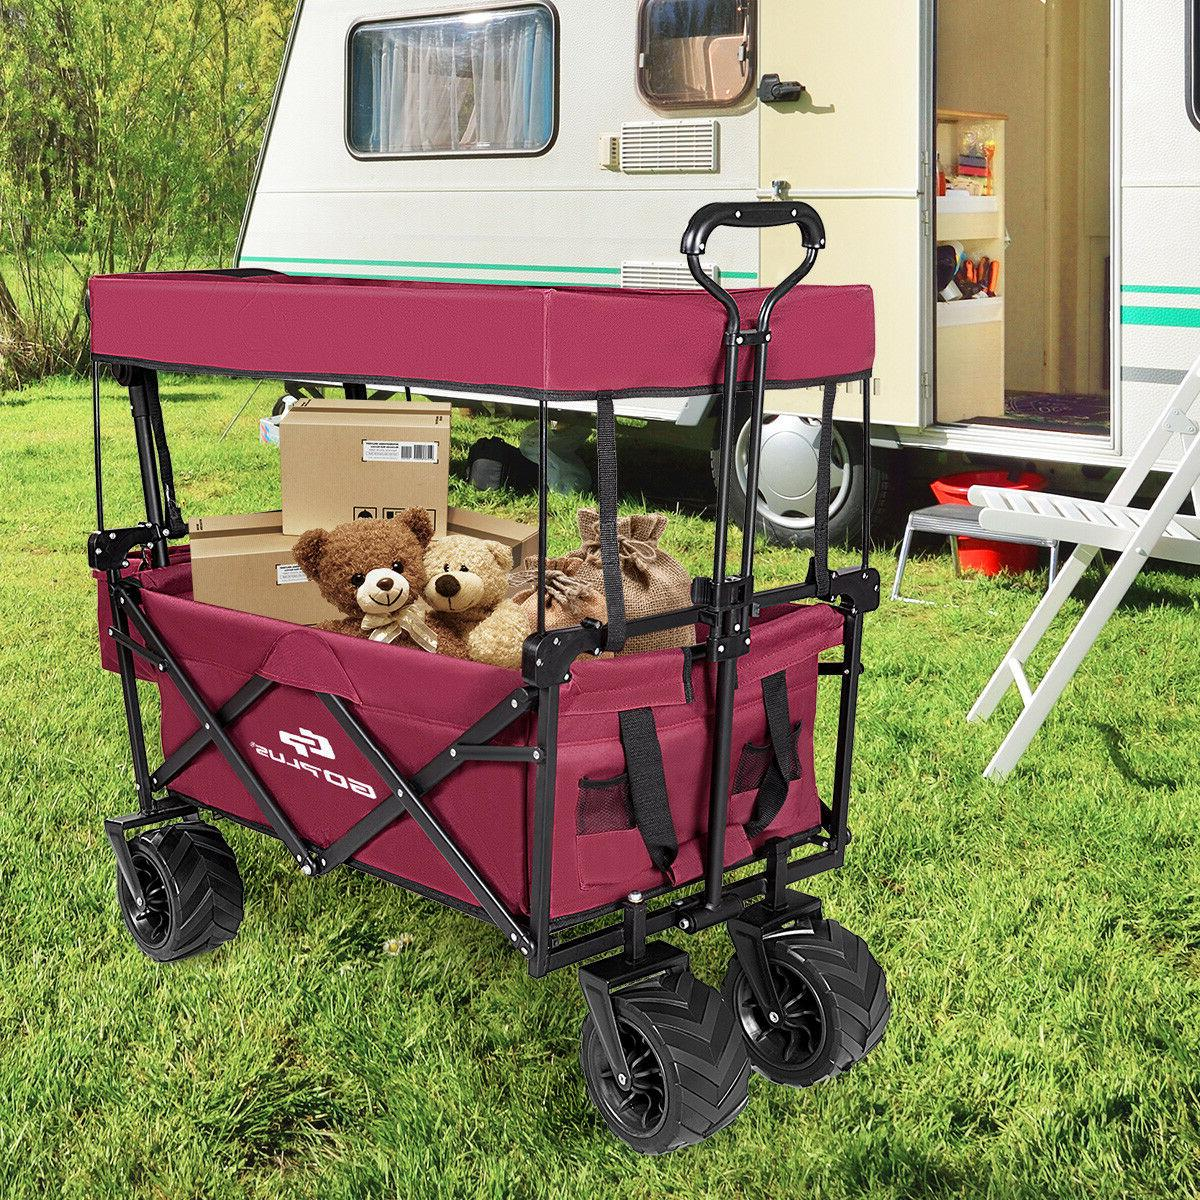 Collapsible W/ Canopy Garden Trolley